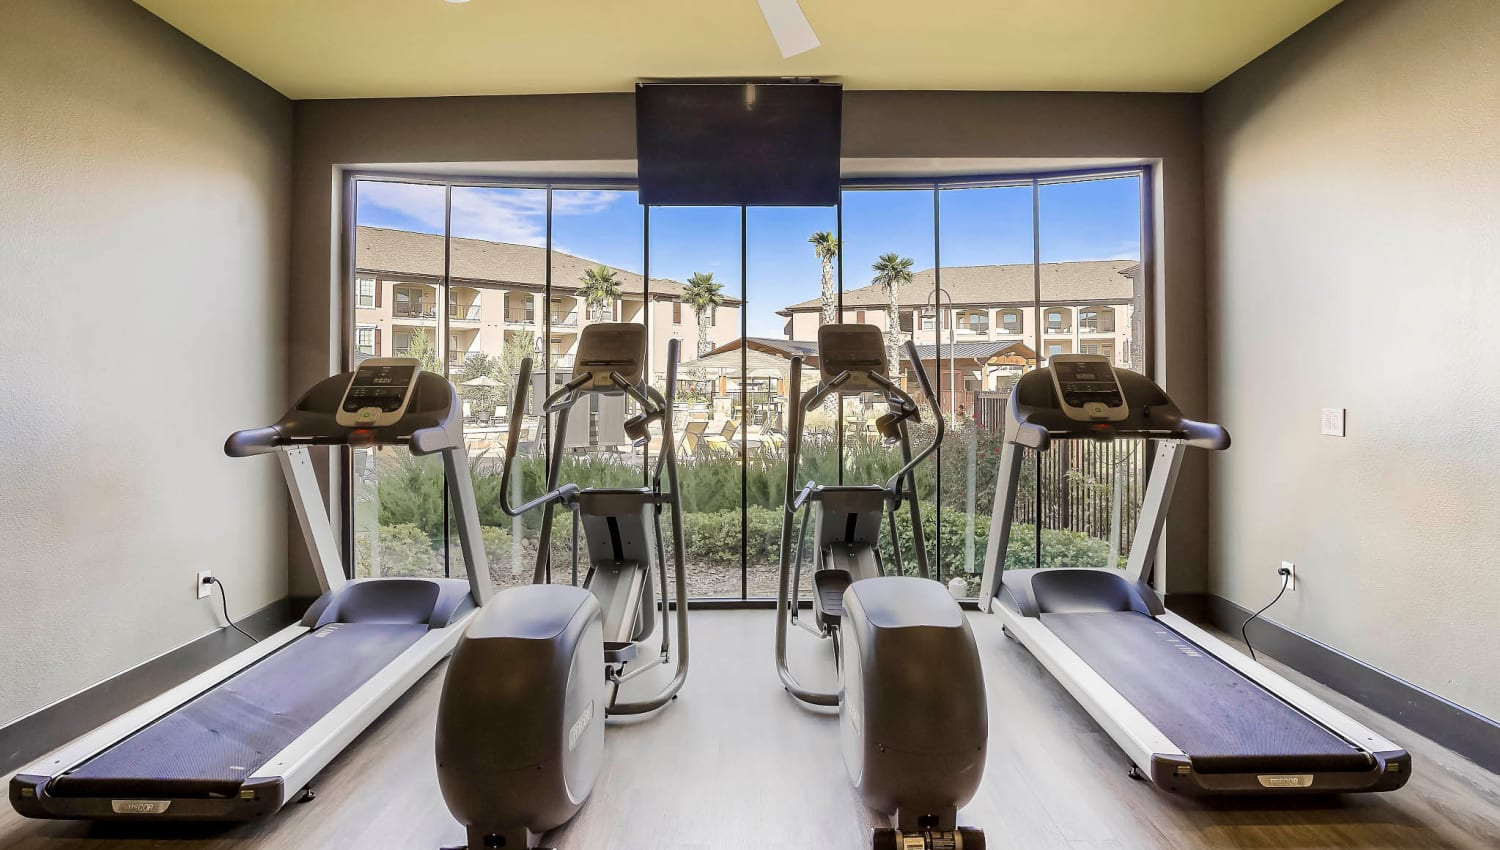 Treadmills and cardio machines in the fitness center at Sundance Creek in Midland, Texas